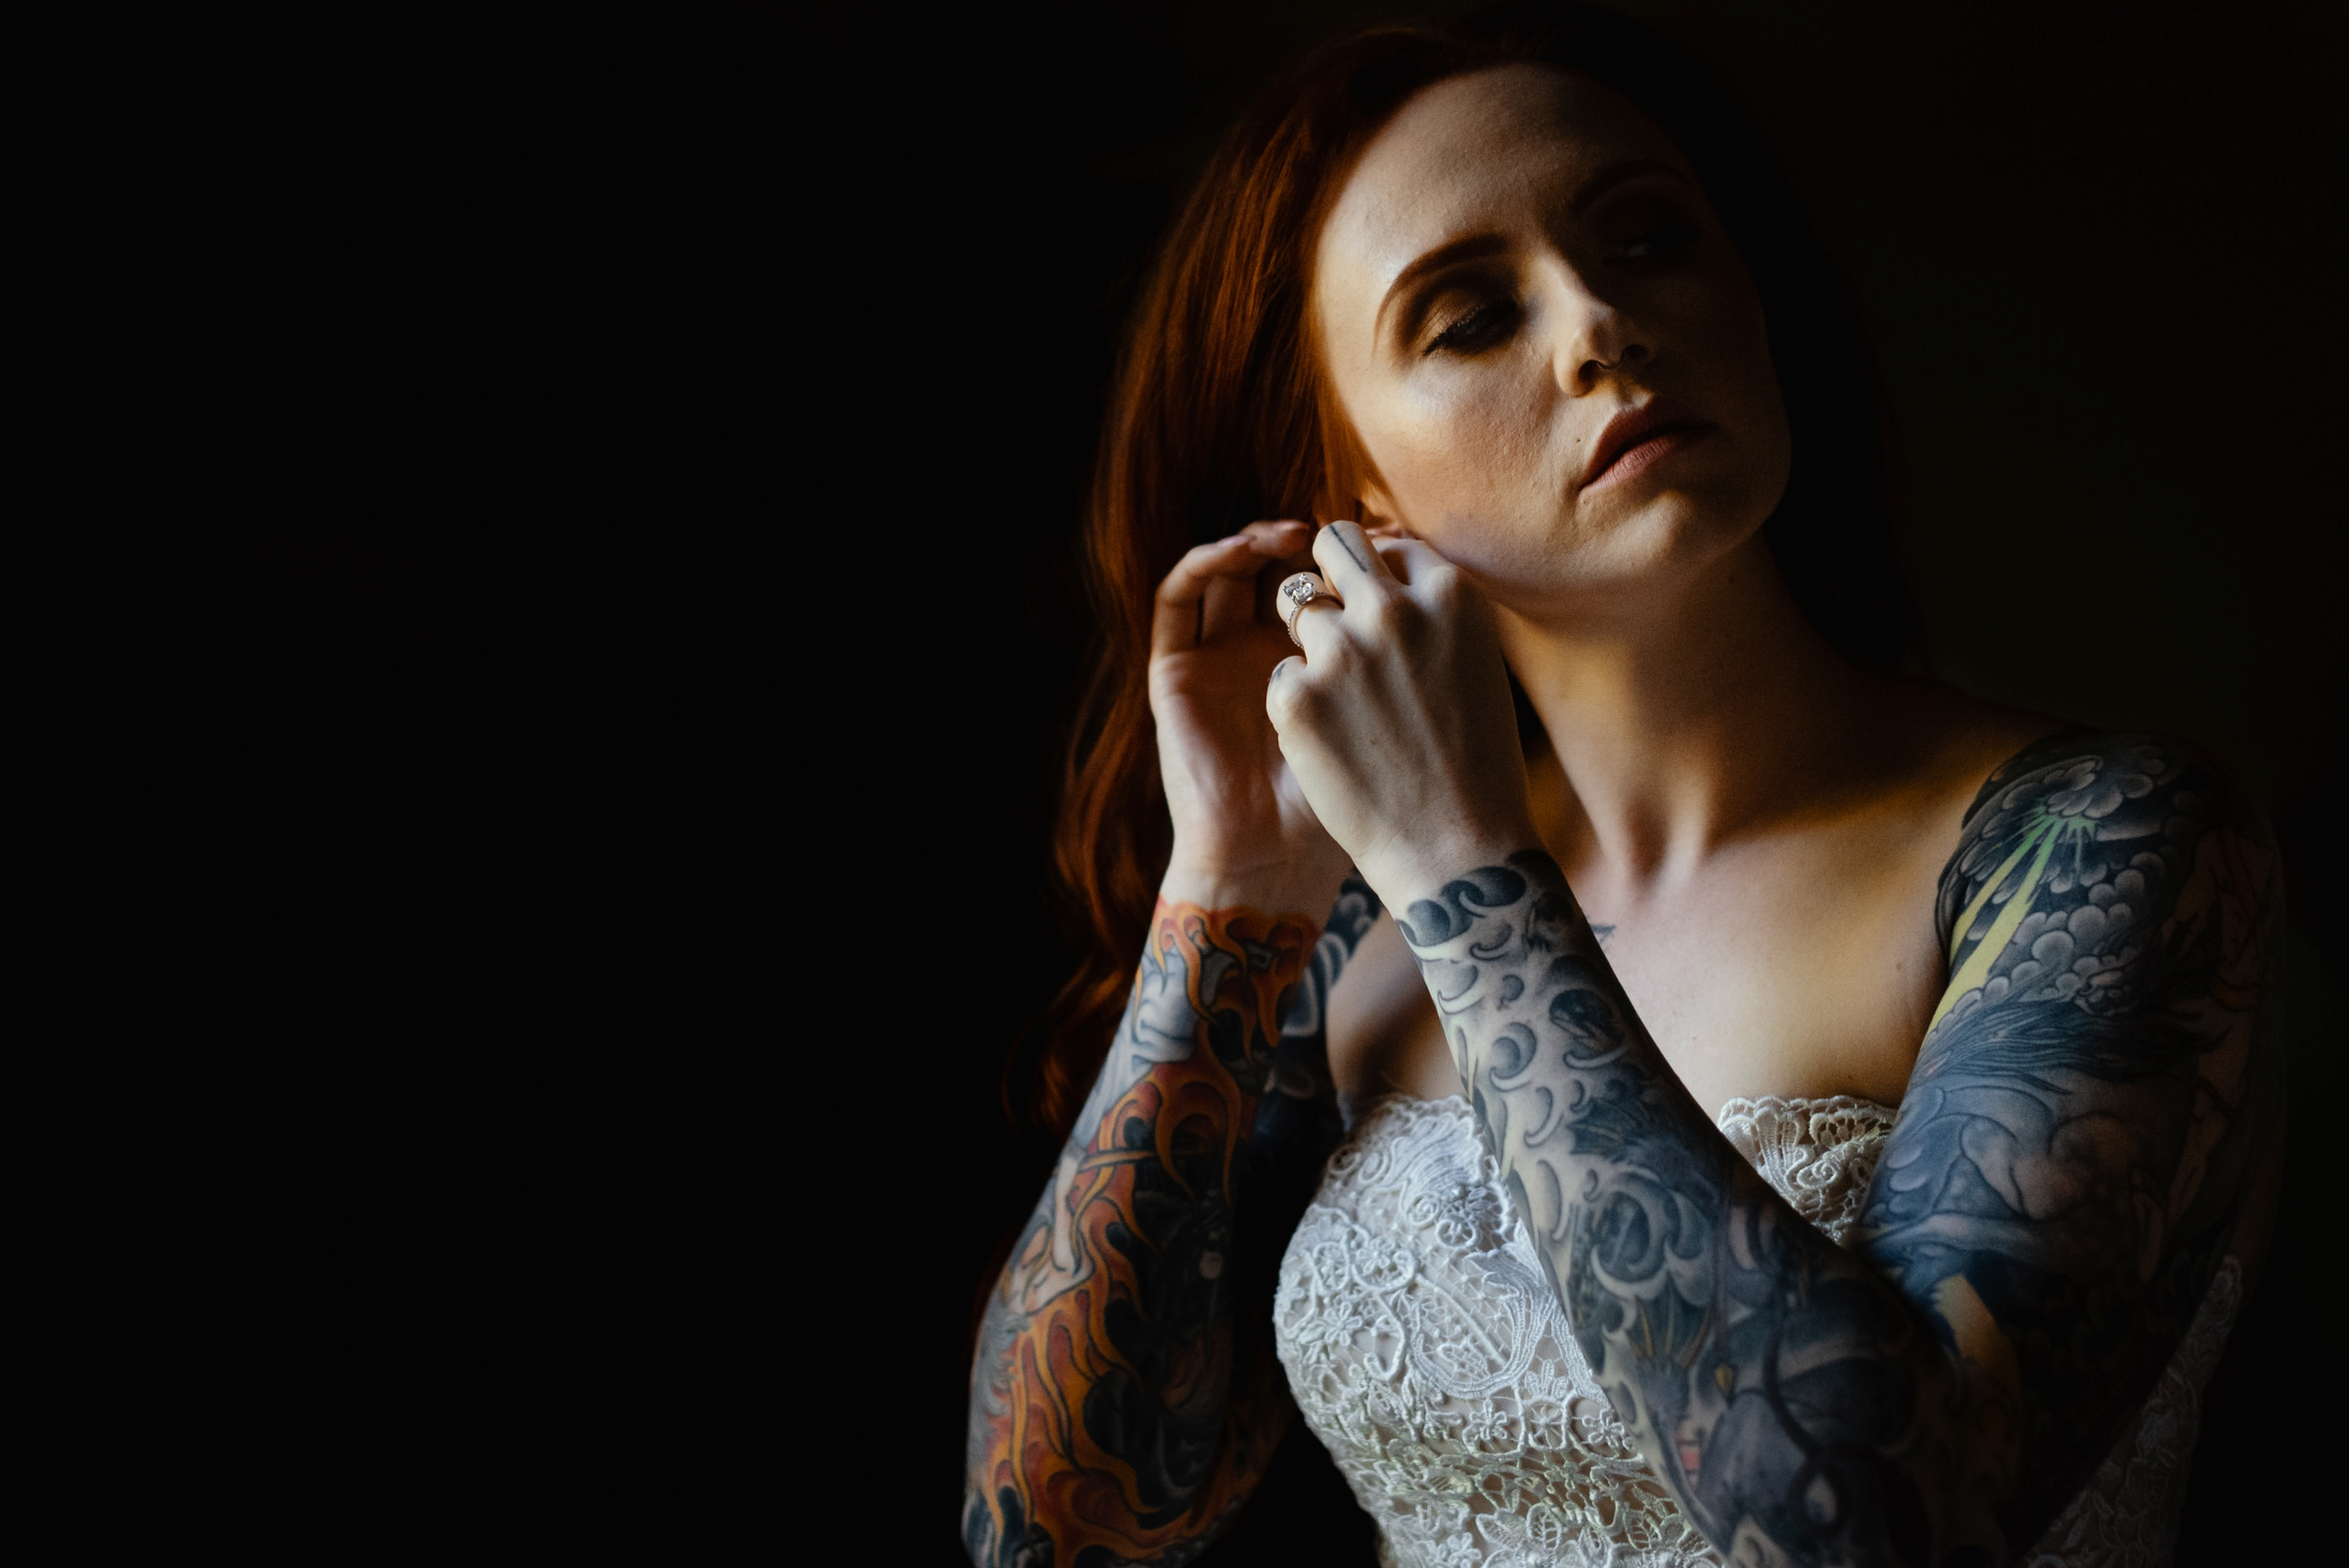 bride-with-intricate-tattoos-putting-her-earrings-on-new-orleans-austin-houston-wedding-photo-by-dark-roux